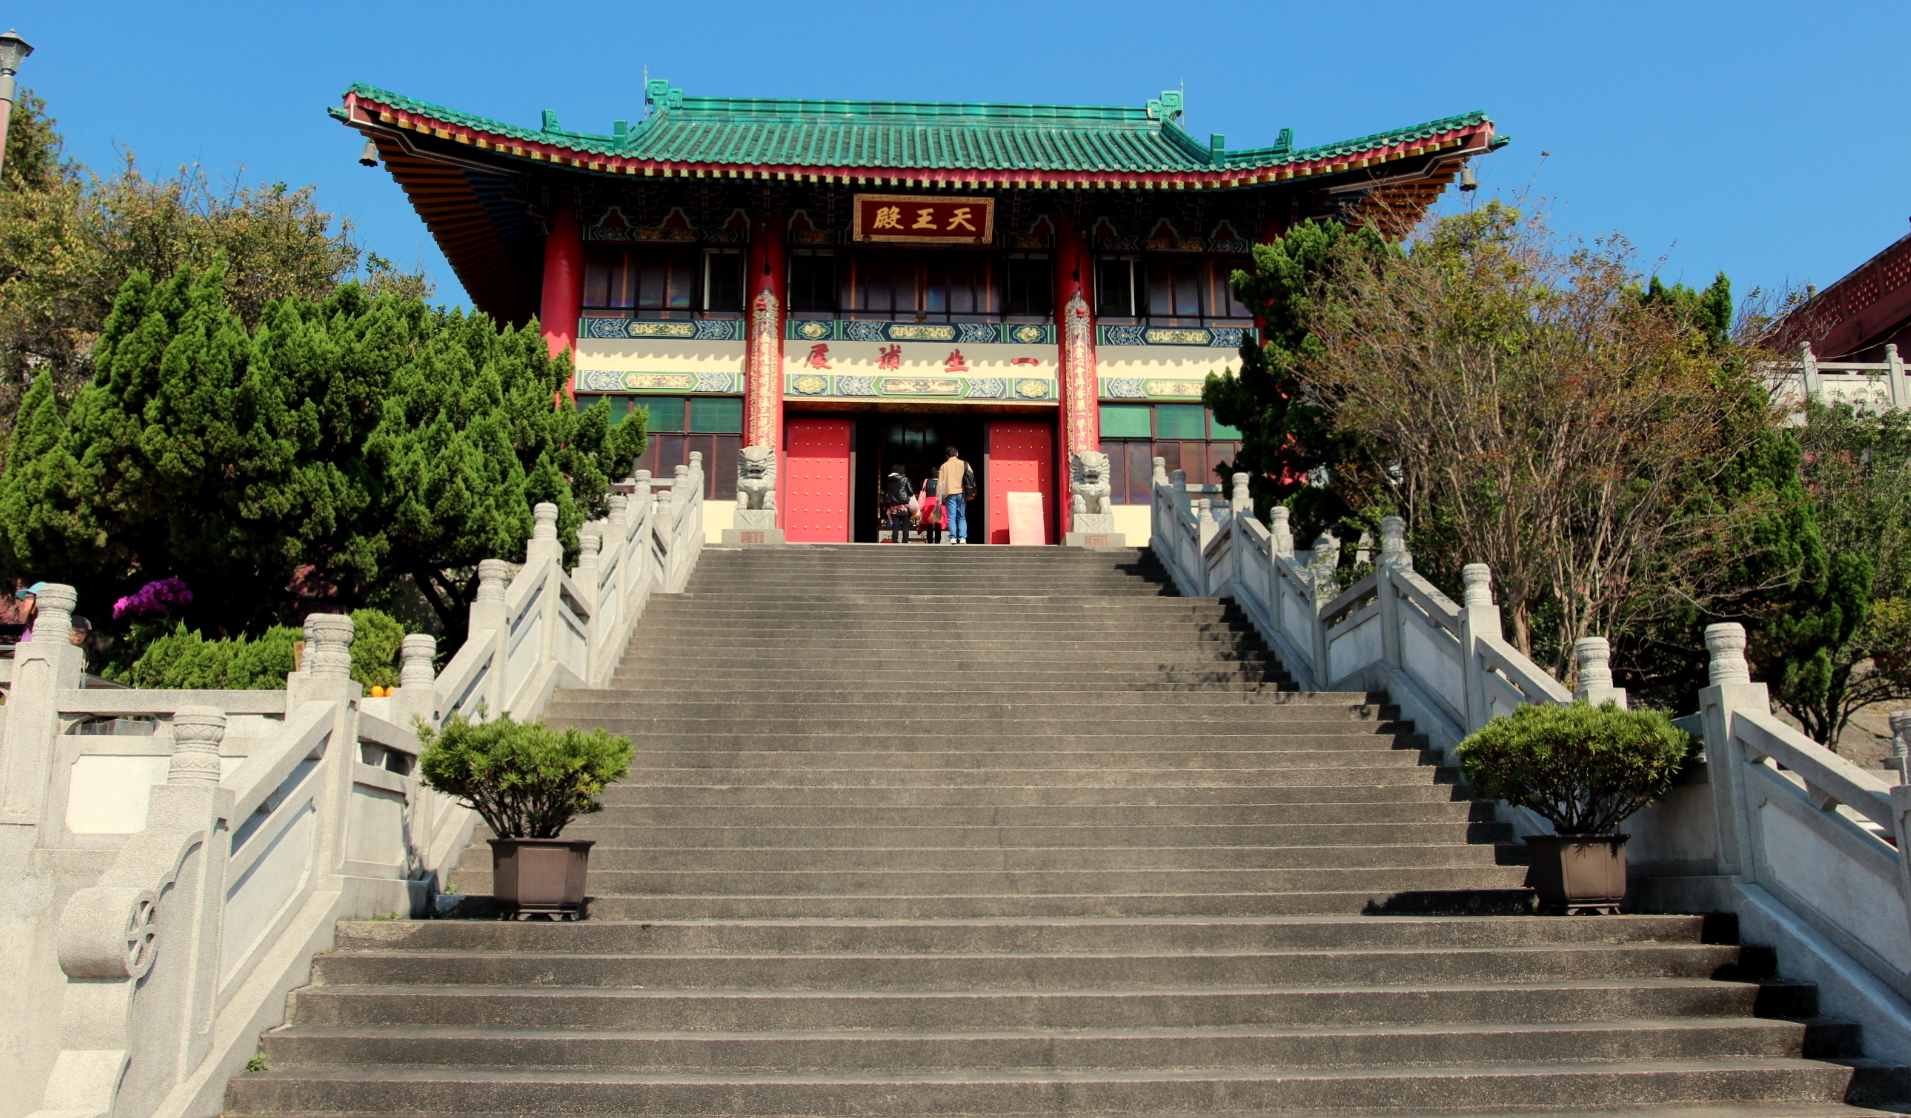 Stairs Up to the Temple